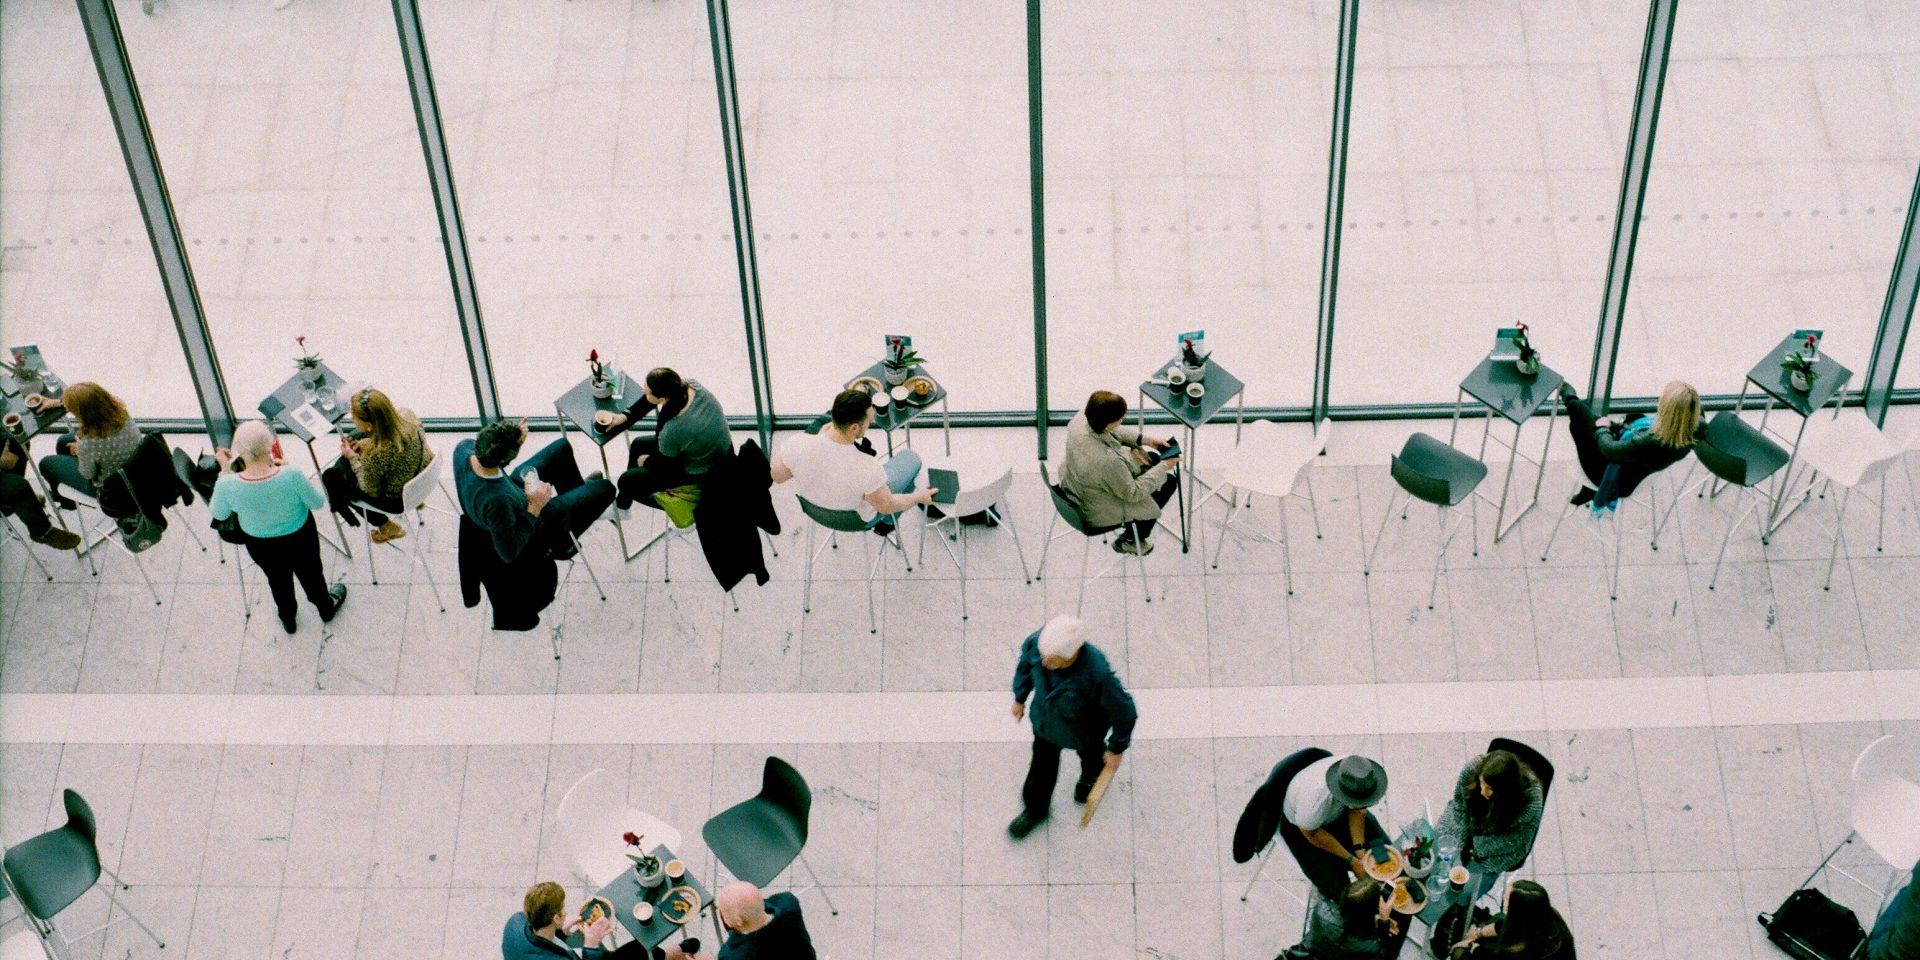 Groups of people drinking coffee at tables